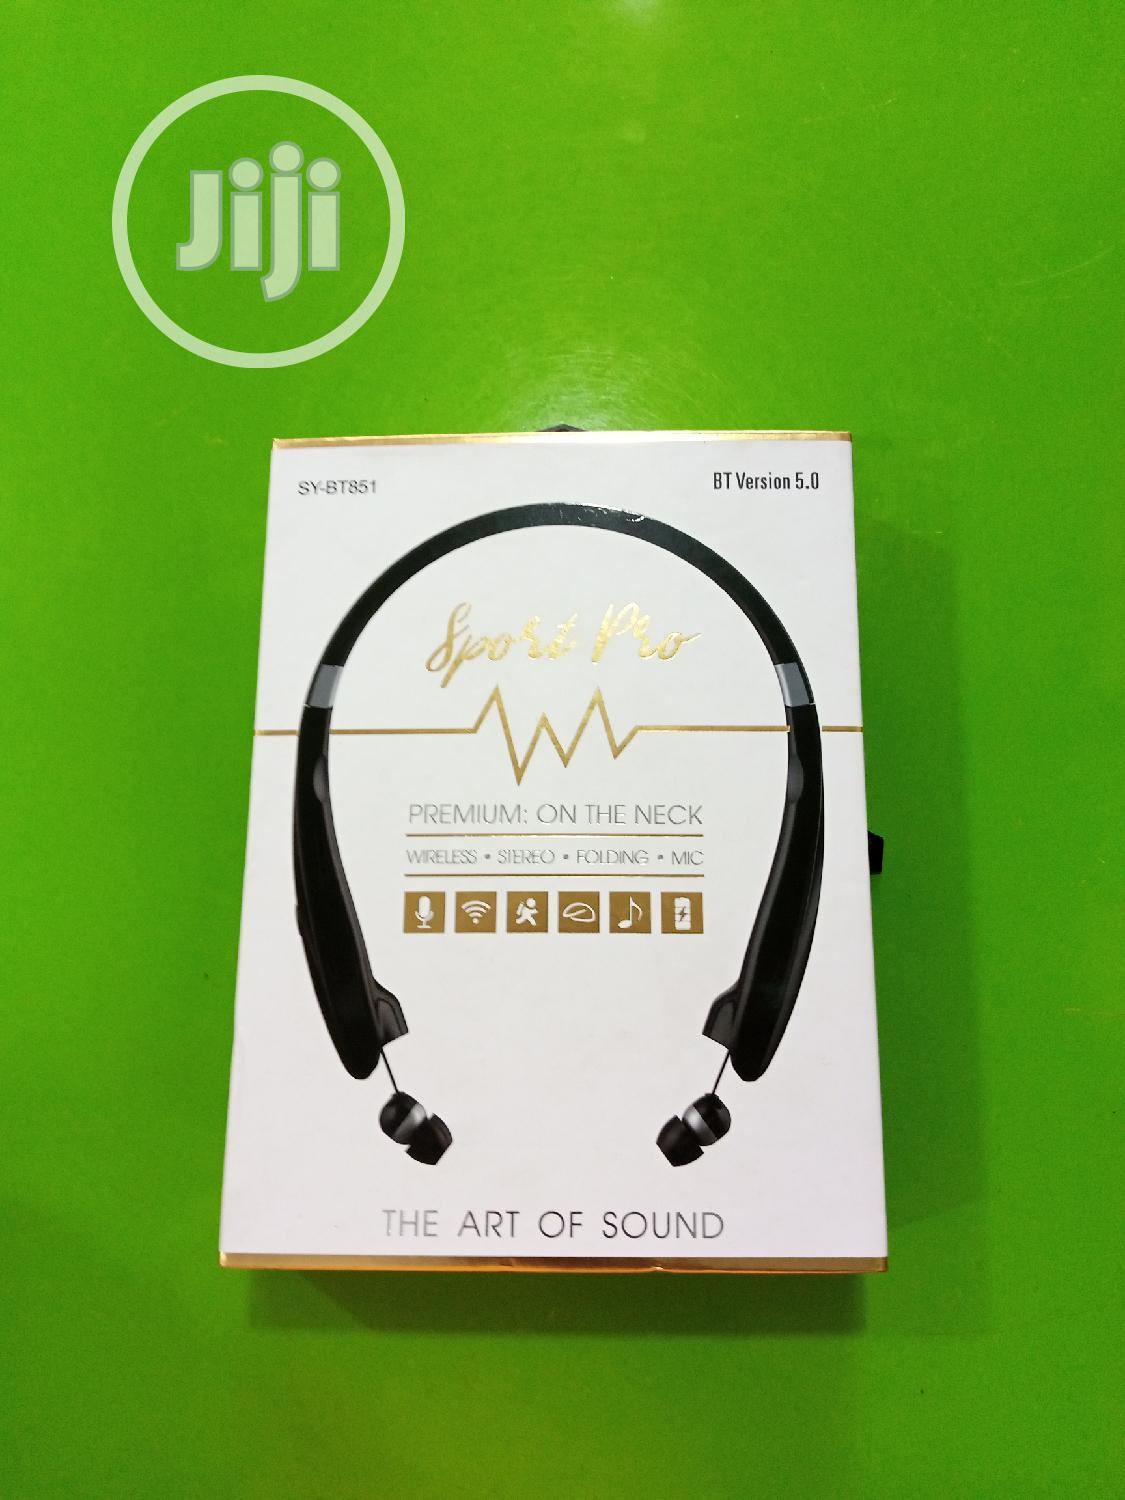 SY-BT851 Wireless Earpiece   Accessories for Mobile Phones & Tablets for sale in Port-Harcourt, Rivers State, Nigeria